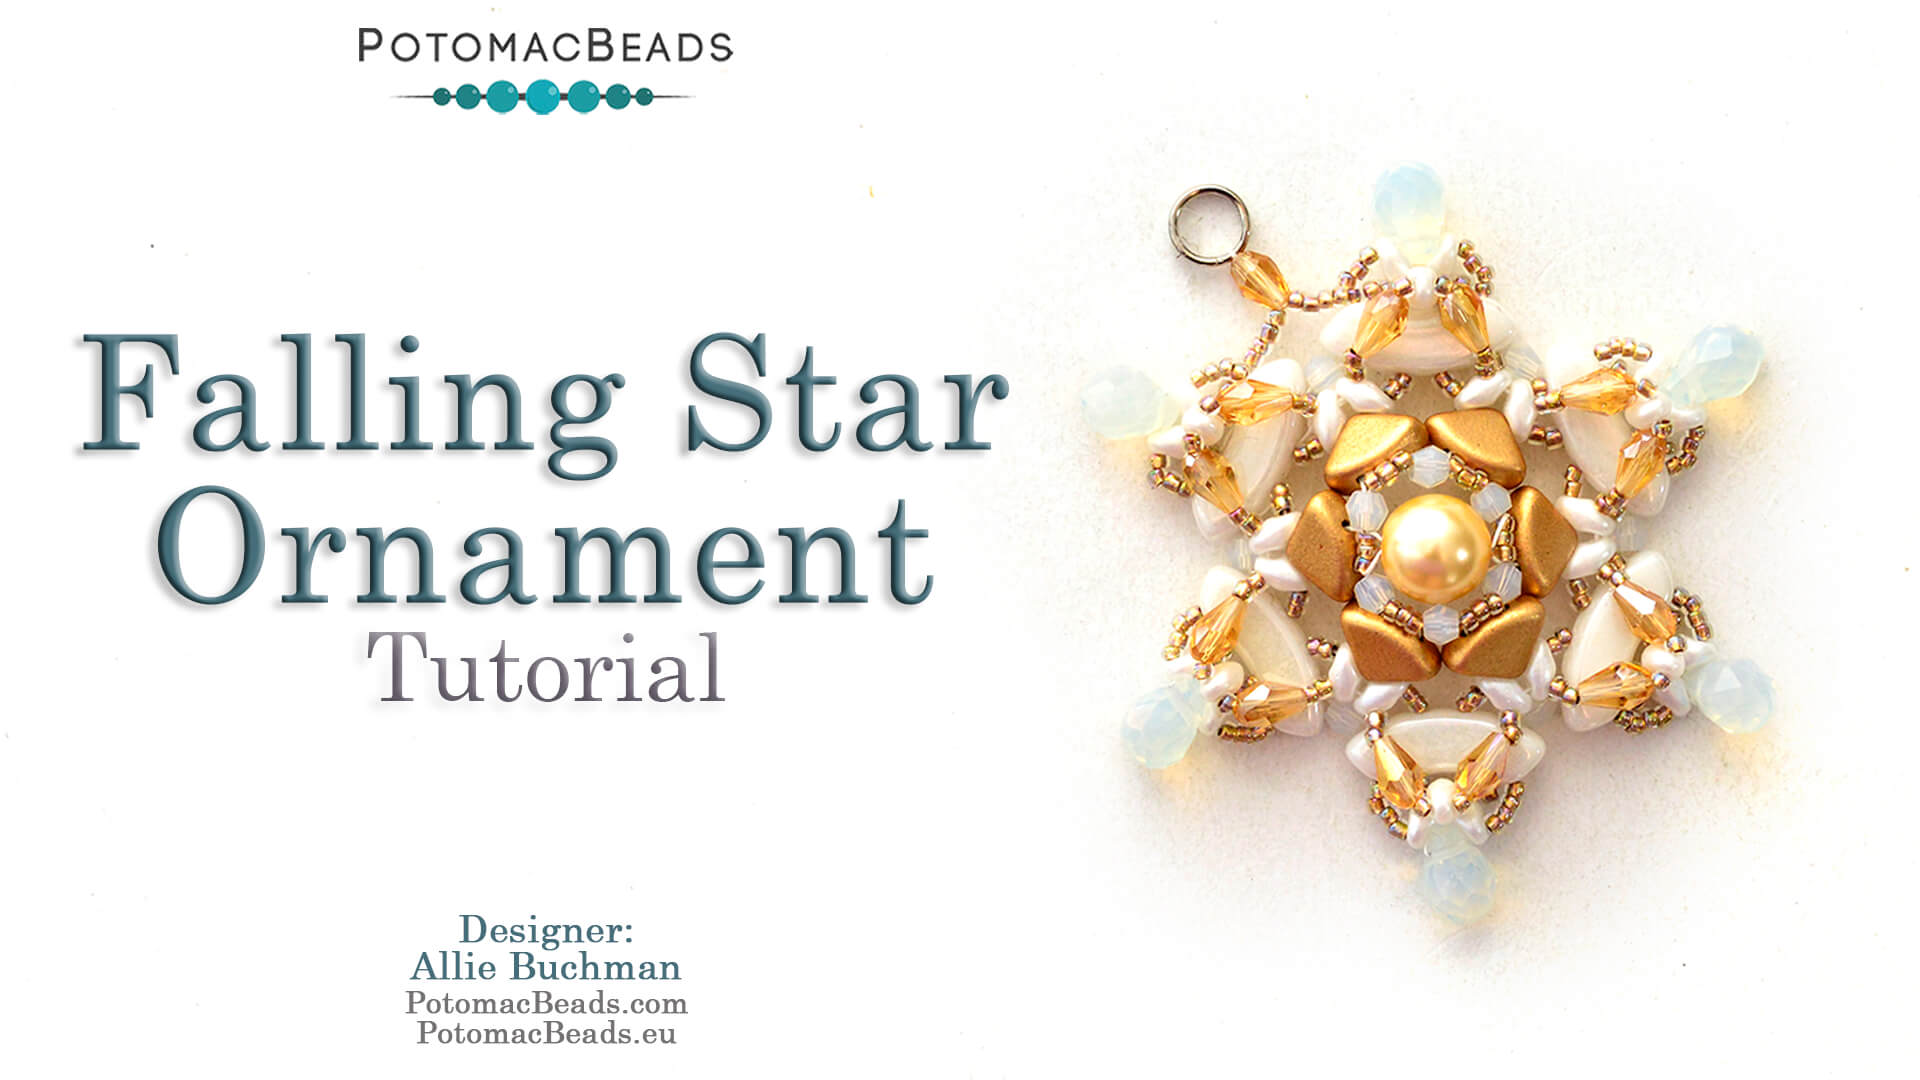 How to Bead Jewelry / Videos Sorted by Beads / Pearl Videos (Czech, Freshwater, Potomac Pearls) / Falling Star Ornament Tutorial